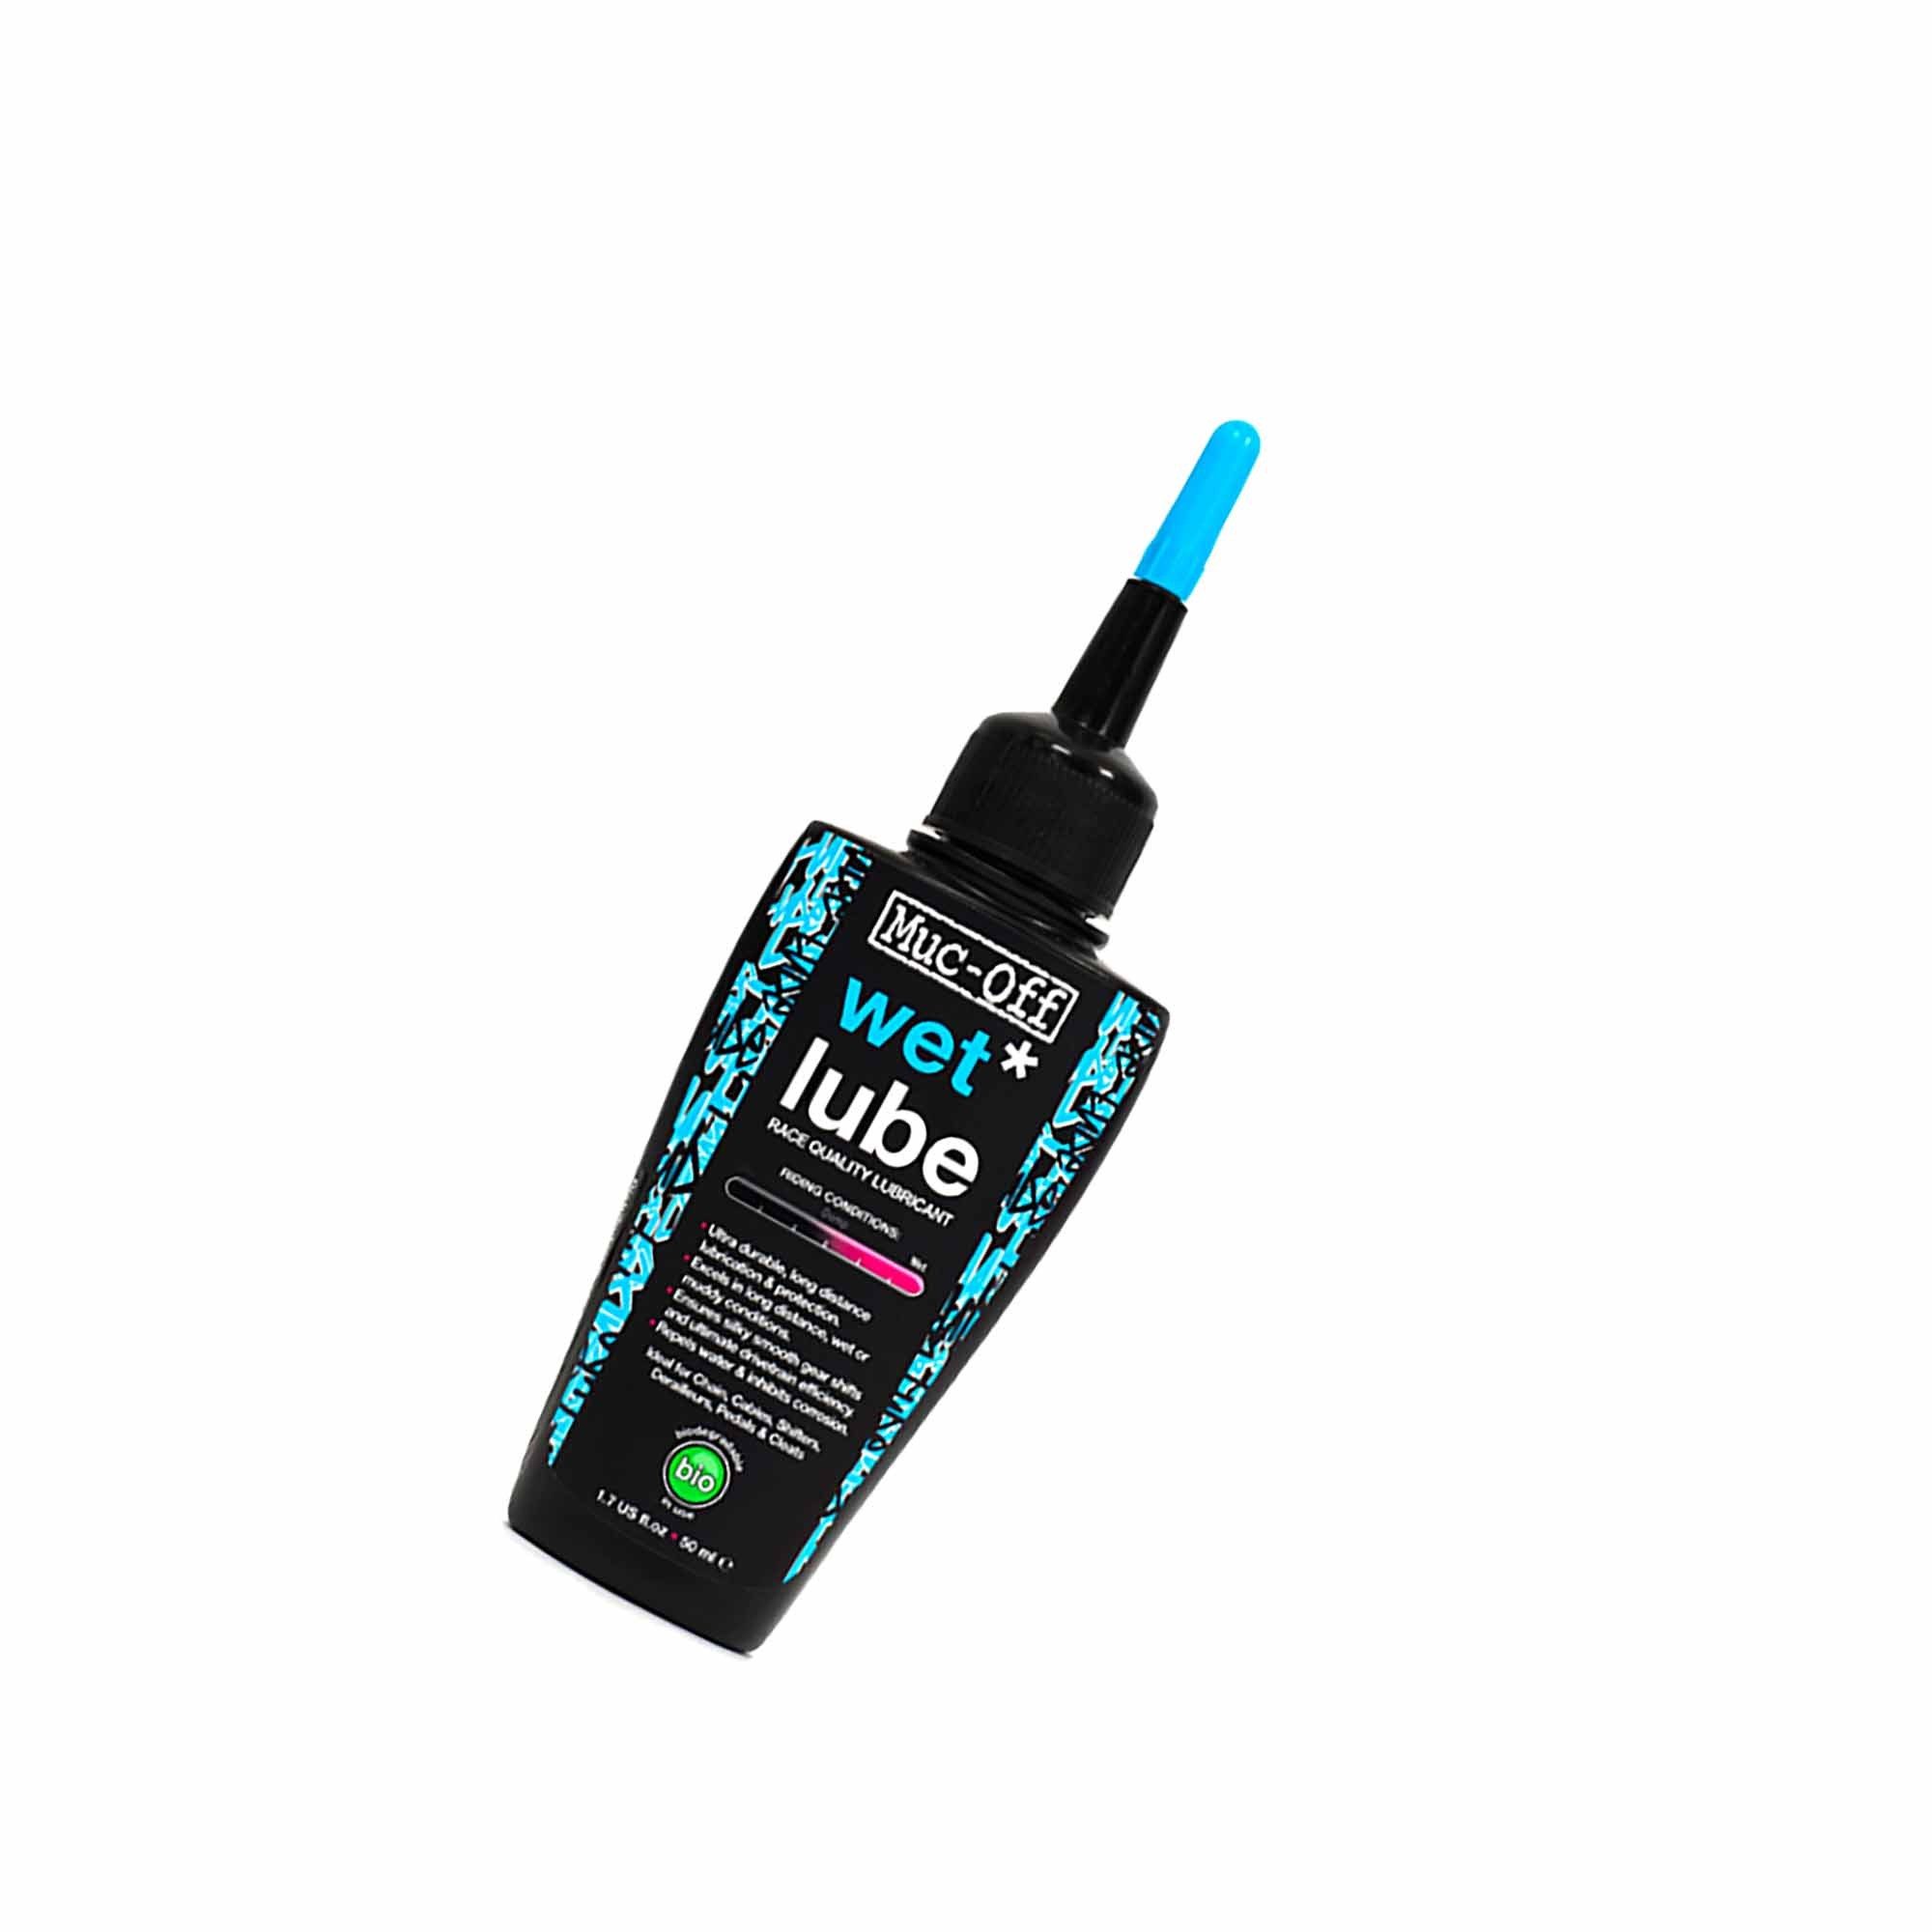 """Lubrifiant chaine Muc-Off conditions humides """"Wet Lube"""" 50ml"""